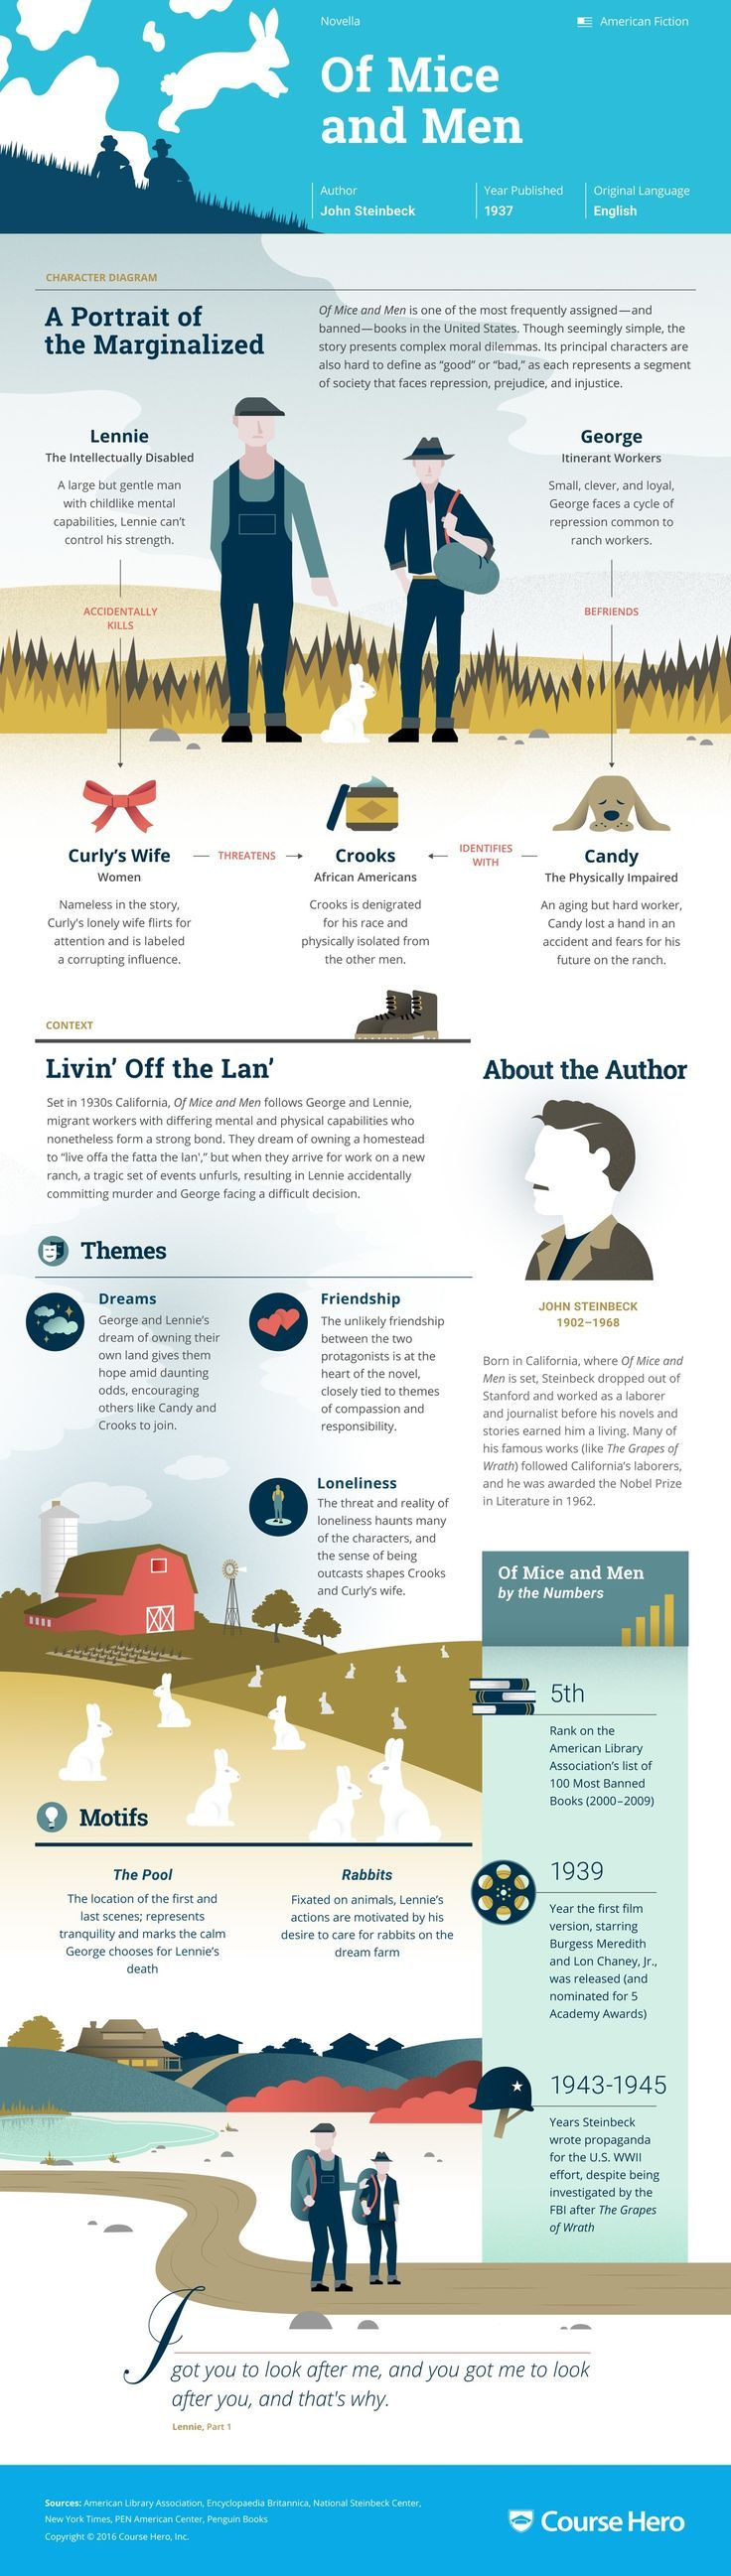 images about literature trivia oliver twist study guide for john steinbeck s of mice and men including chapter summary character analysis and more learn all about of mice and men ask questions